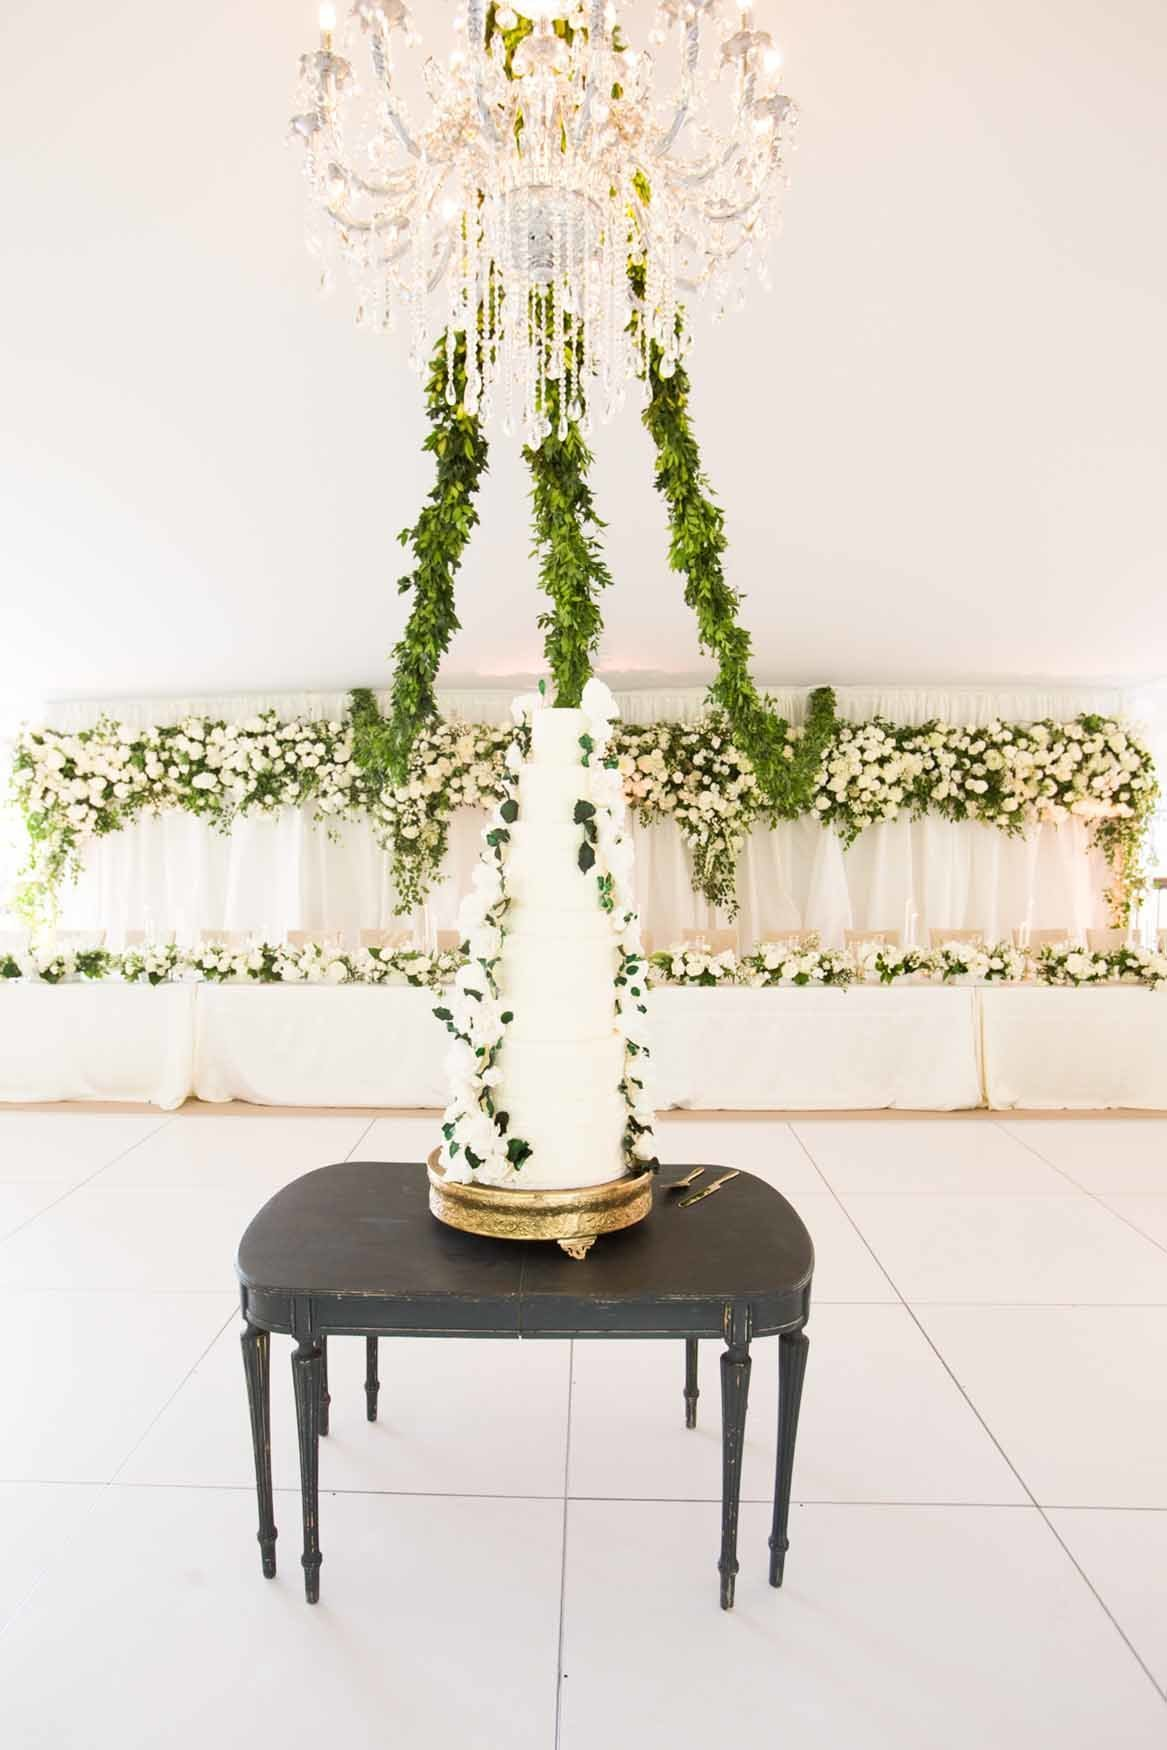 White wedding cake on table beneath a crystal chandelier and green garlands